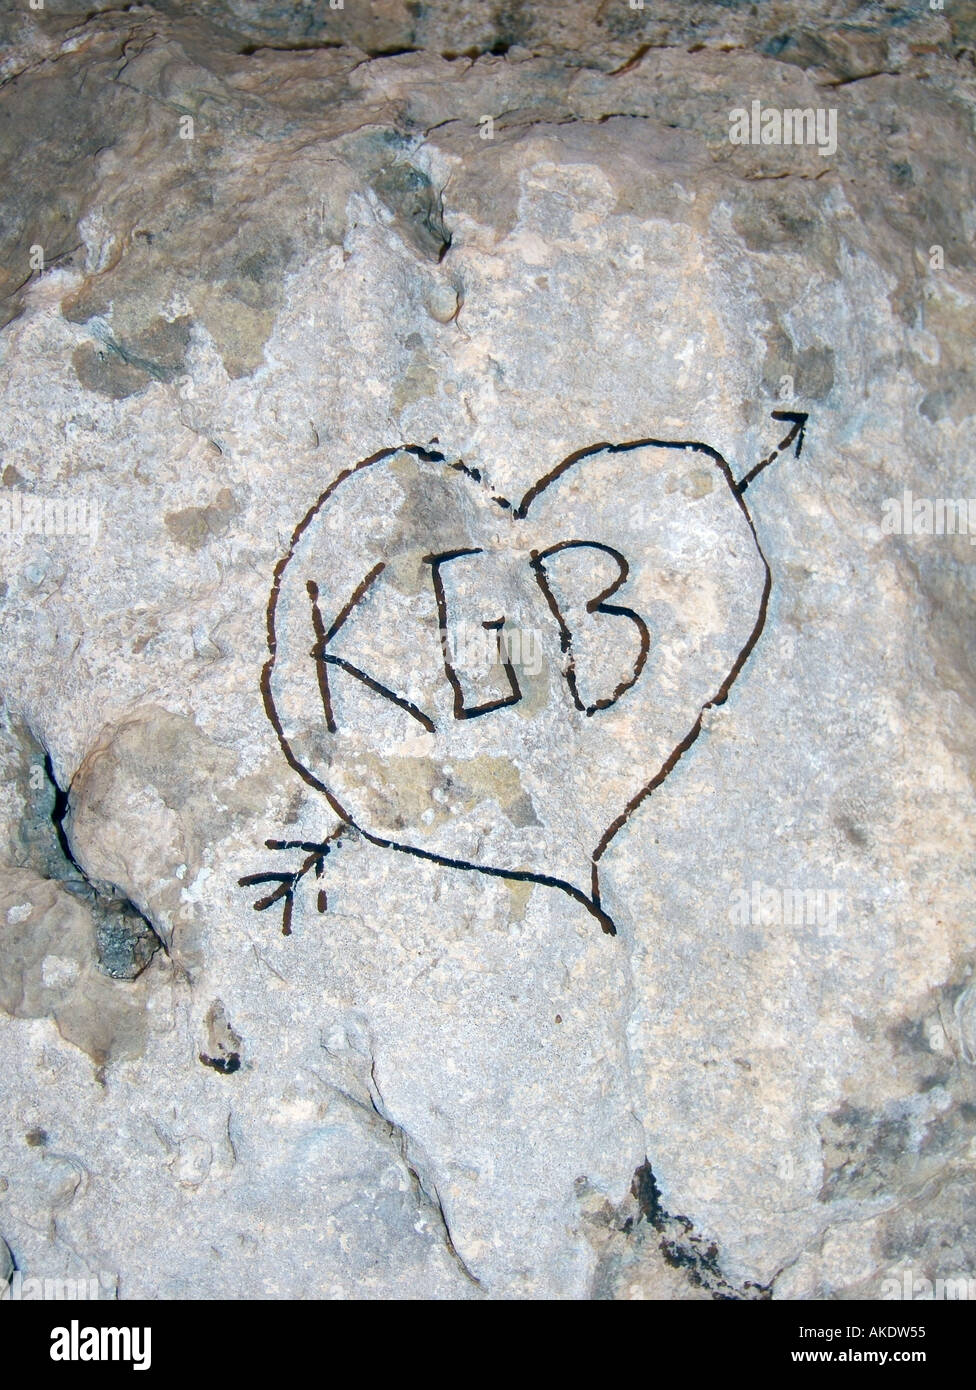 kgb written in a heart with arrow - Stock Image